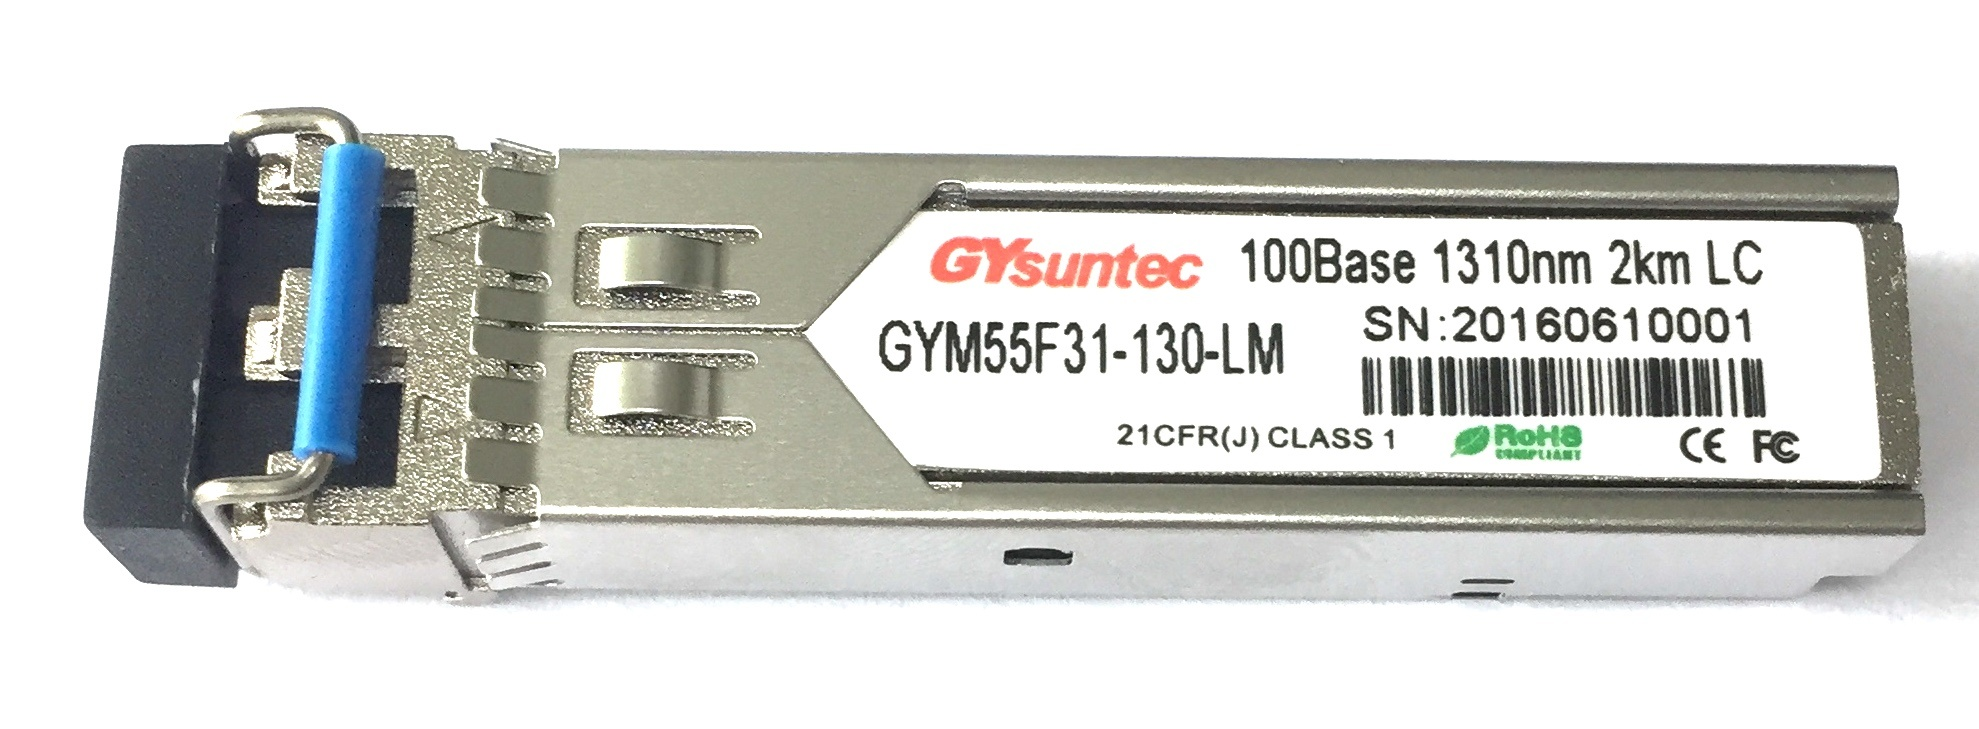 [Hot Item] 1GB Single Mode Dual Fiber 20km SFP Compatible with Cisco